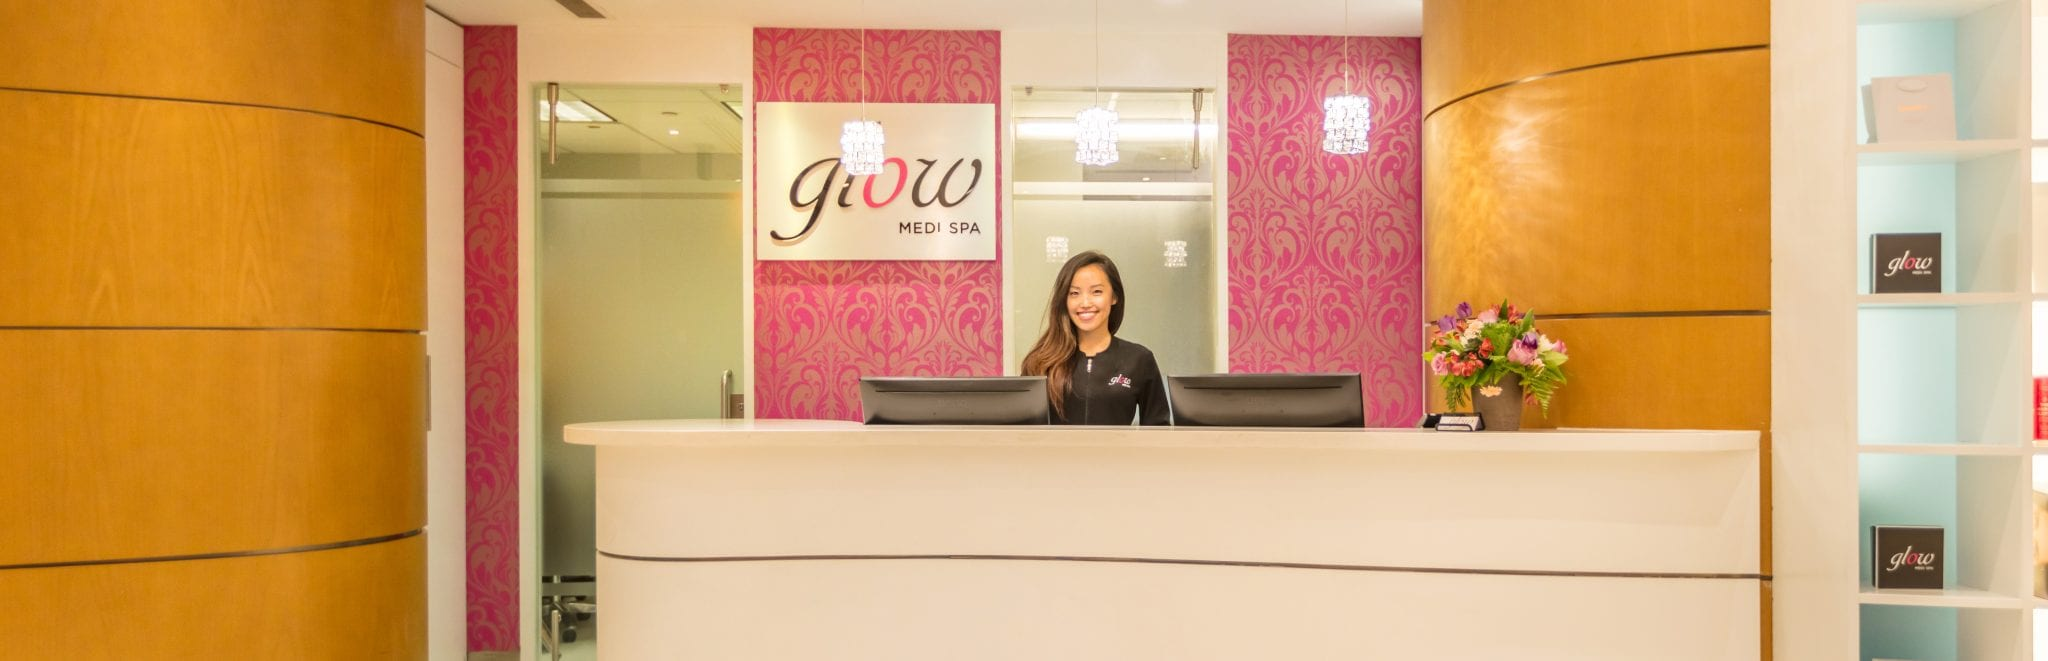 Award-Winning Glow Medi-Spa is Right at Home in Bloor-Yorkville